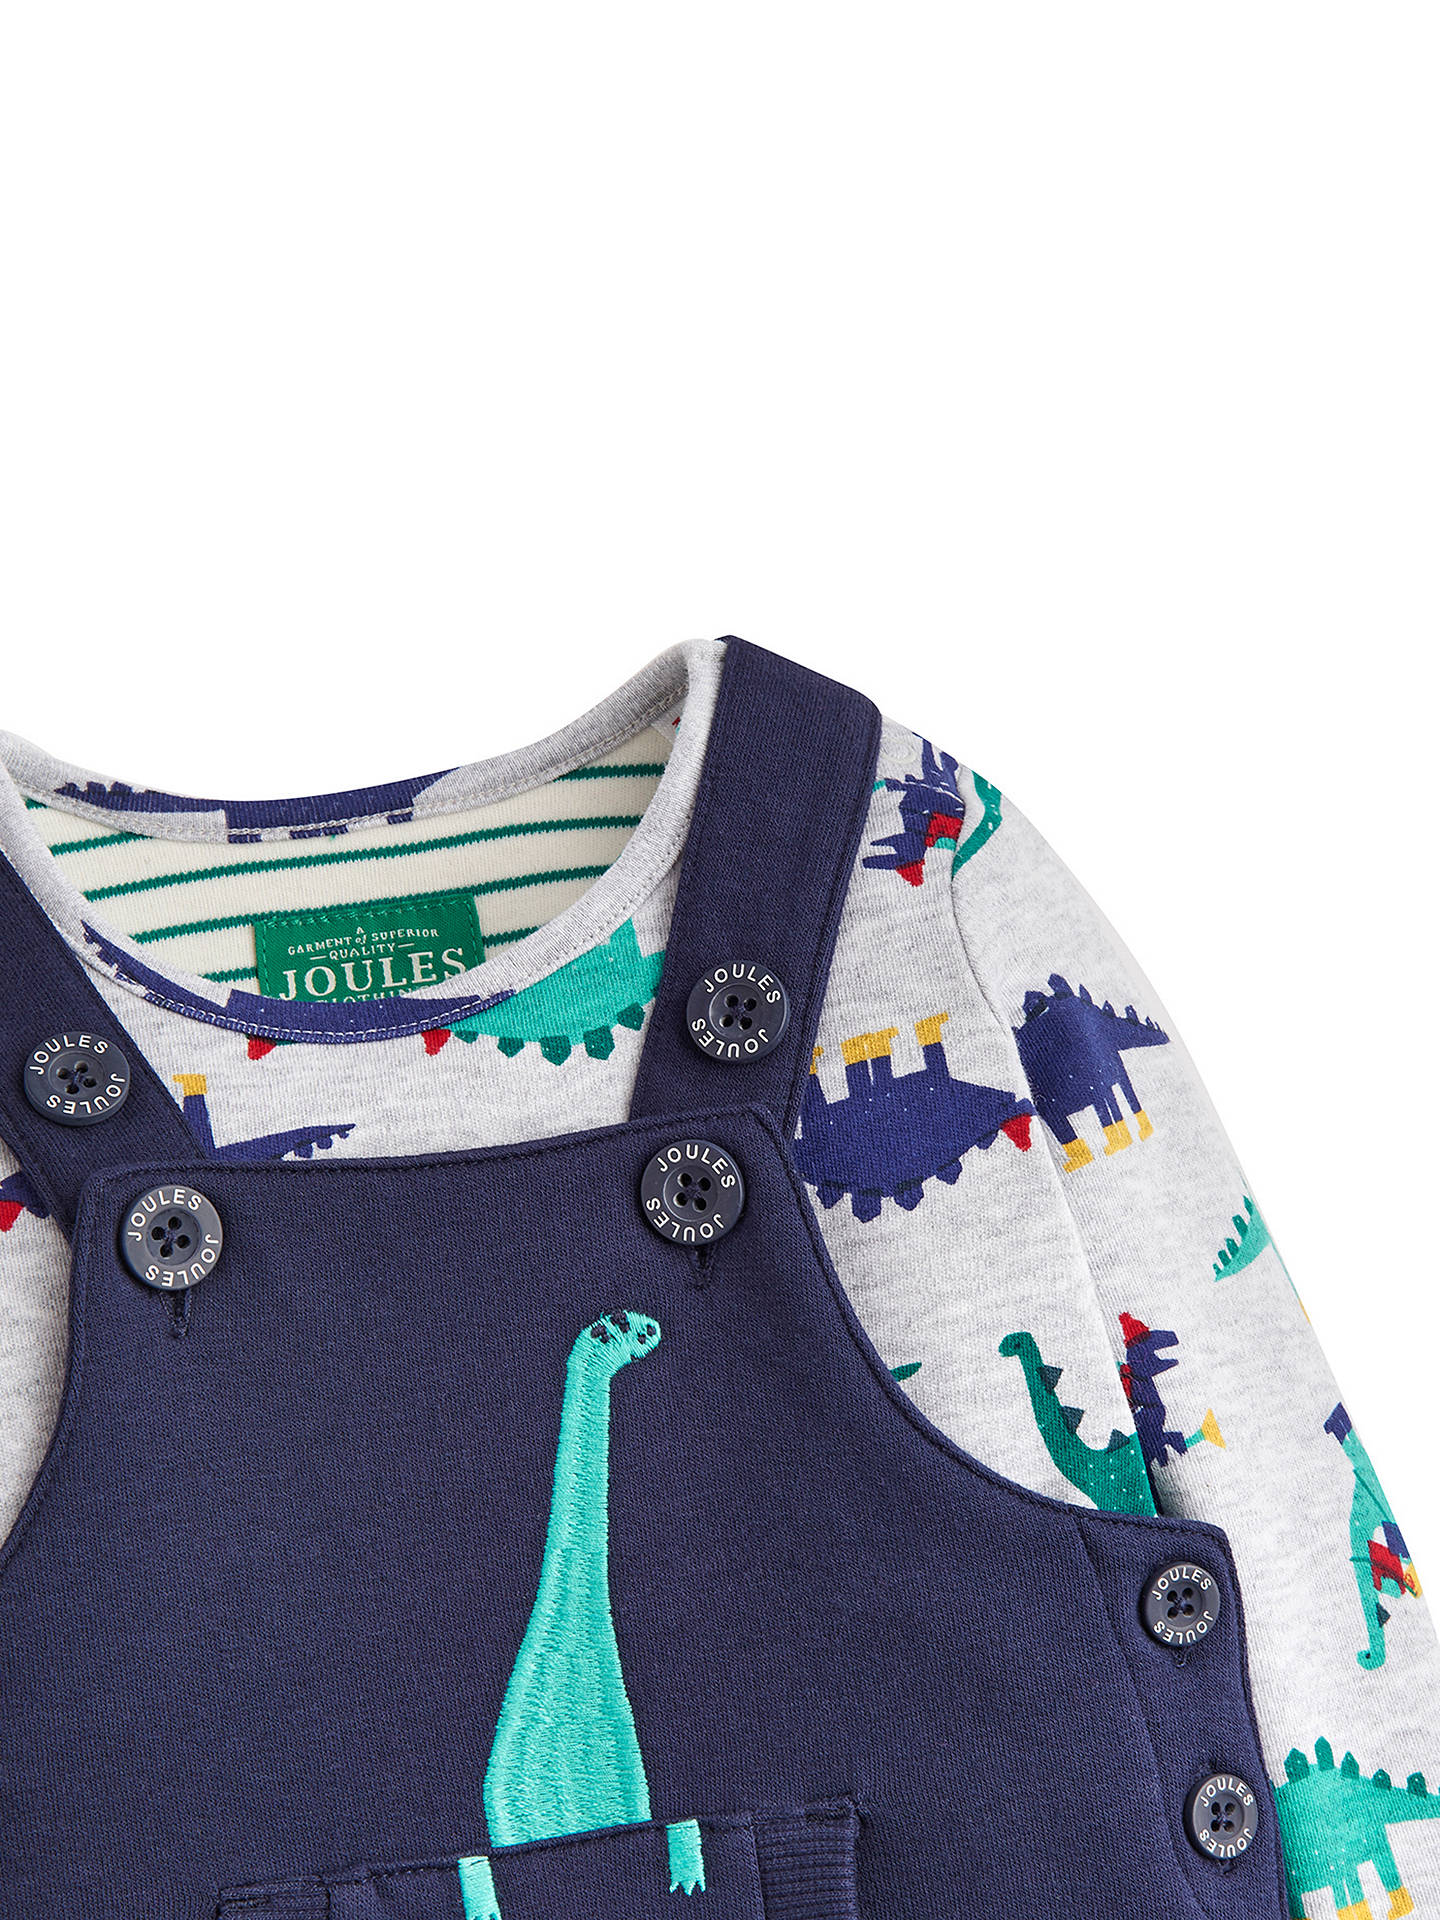 Buy Baby Joule Dinosaur Dungaree and T-Shirt Set, Navy, 0-3 months Online at johnlewis.com